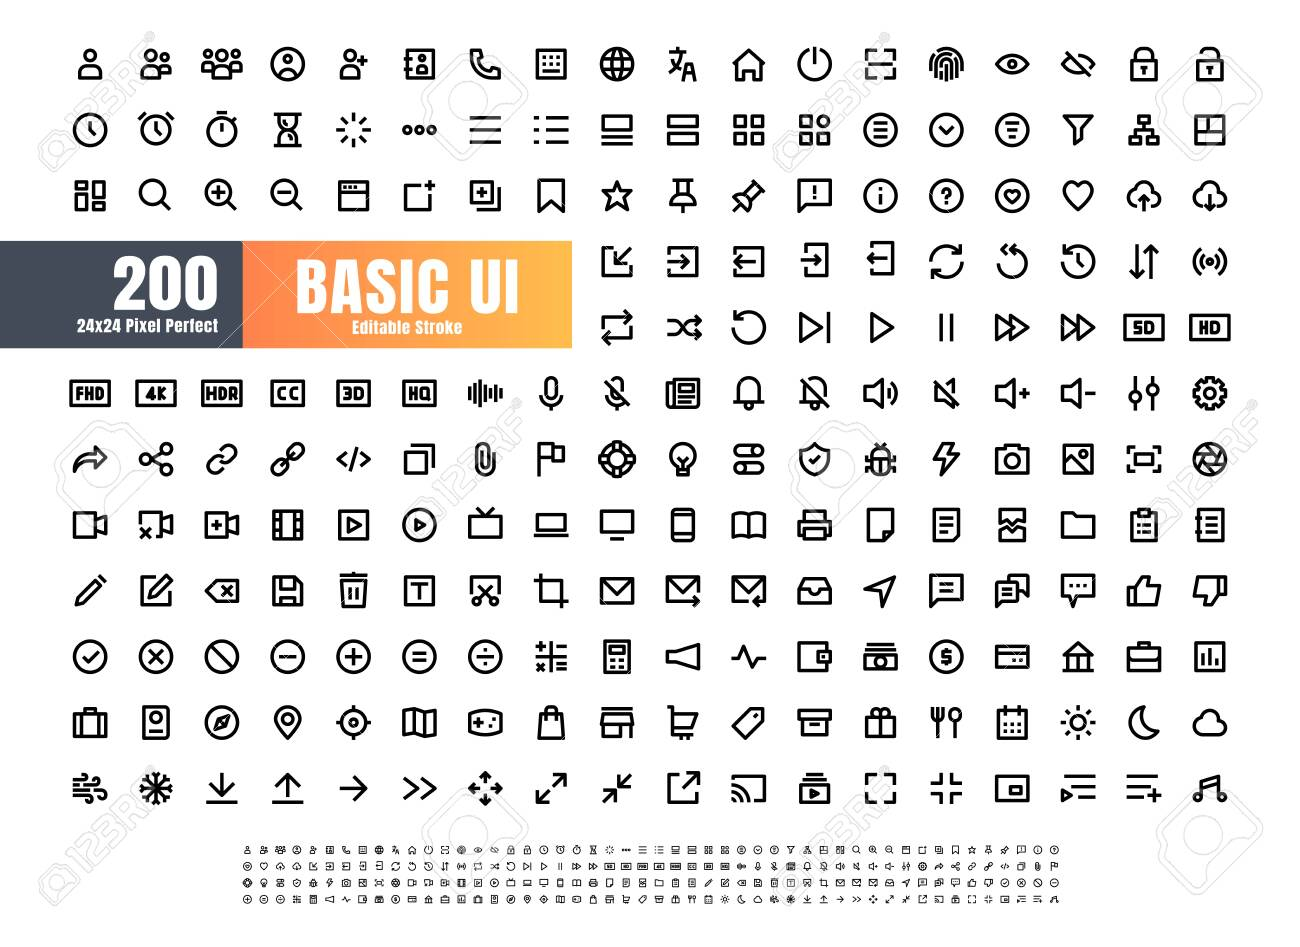 24x24 Pixel Perfect Basic User Interface Essential Set. 200 Line Outline Icons. For App, Web, Print. Editable Stroke - 154193646